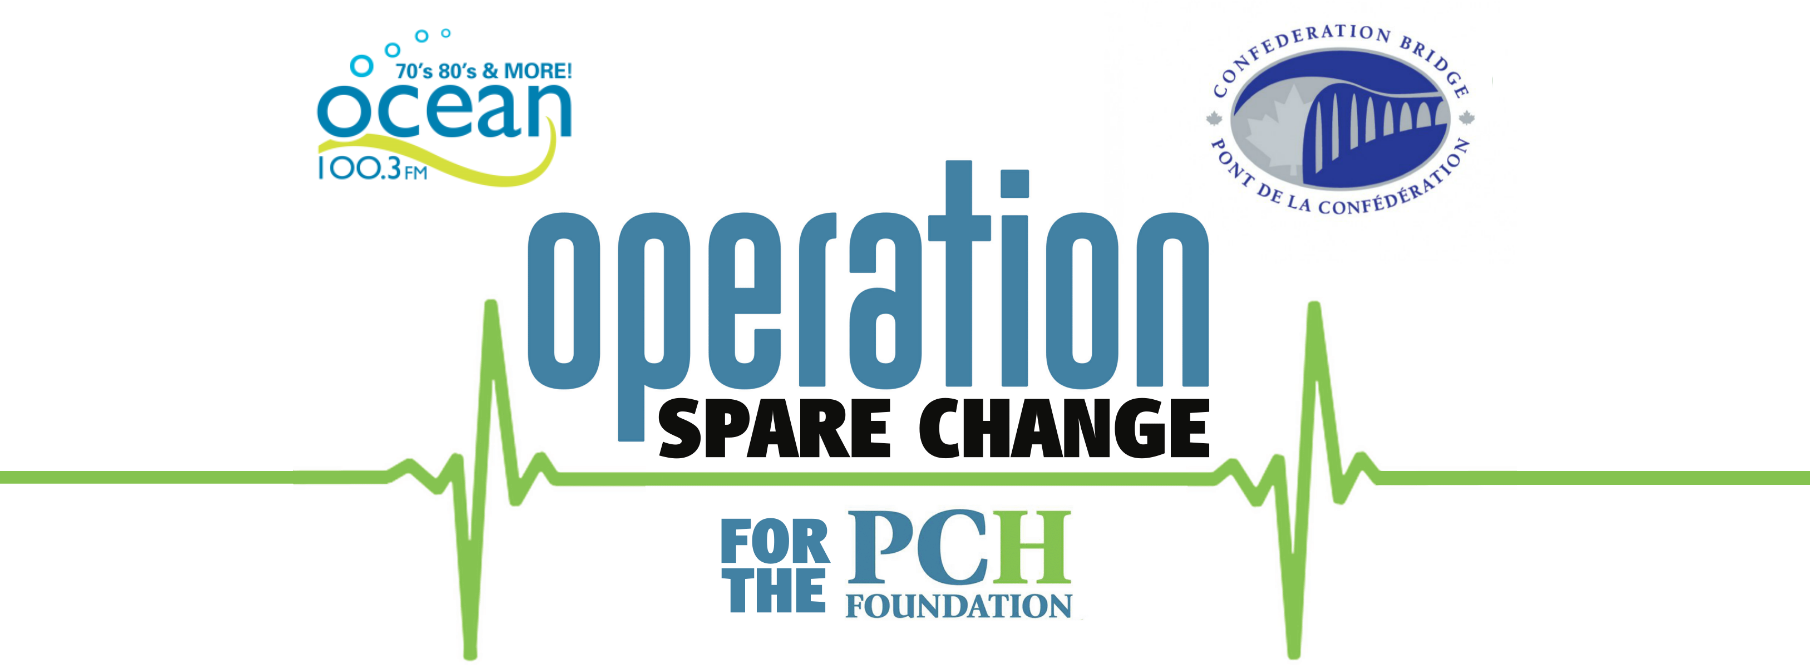 Feature: http://www.ocean100.com/operation-spare-change/